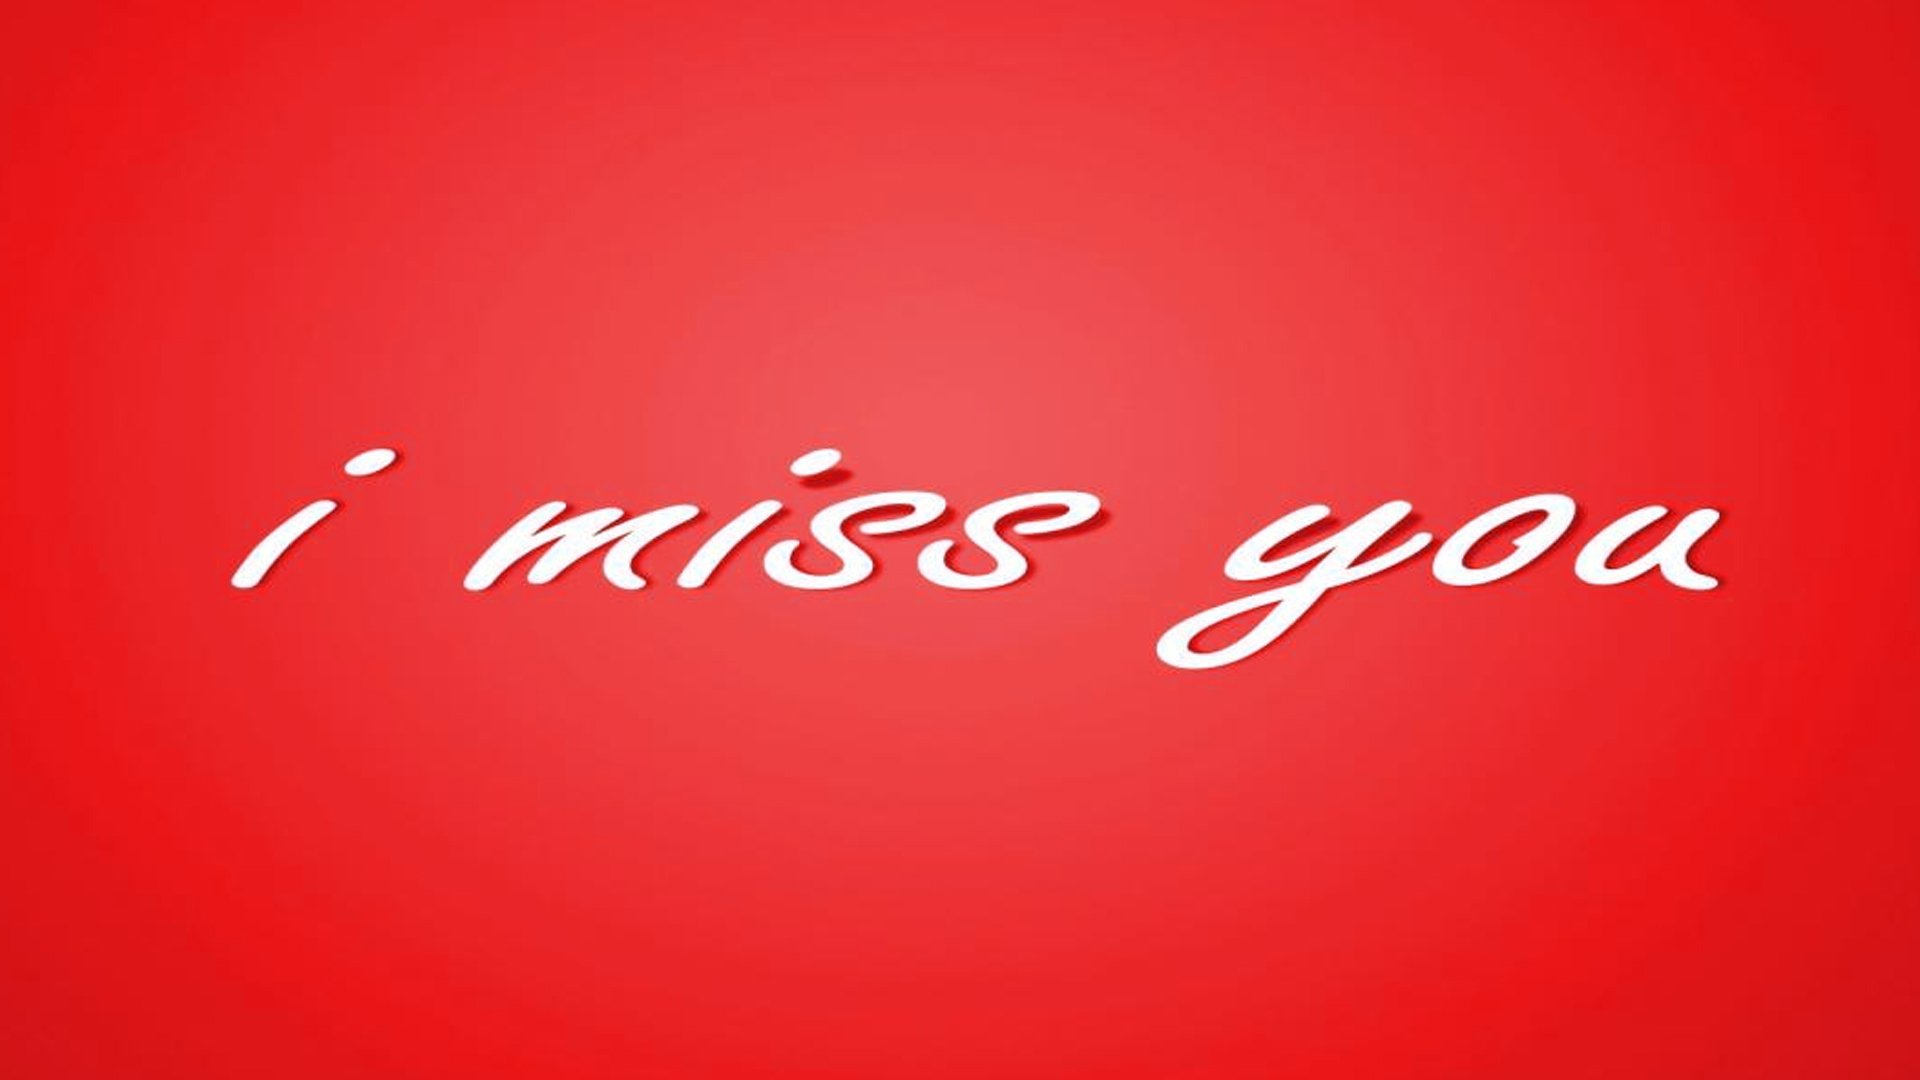 I Miss You Wallpaper Wallpapersafari